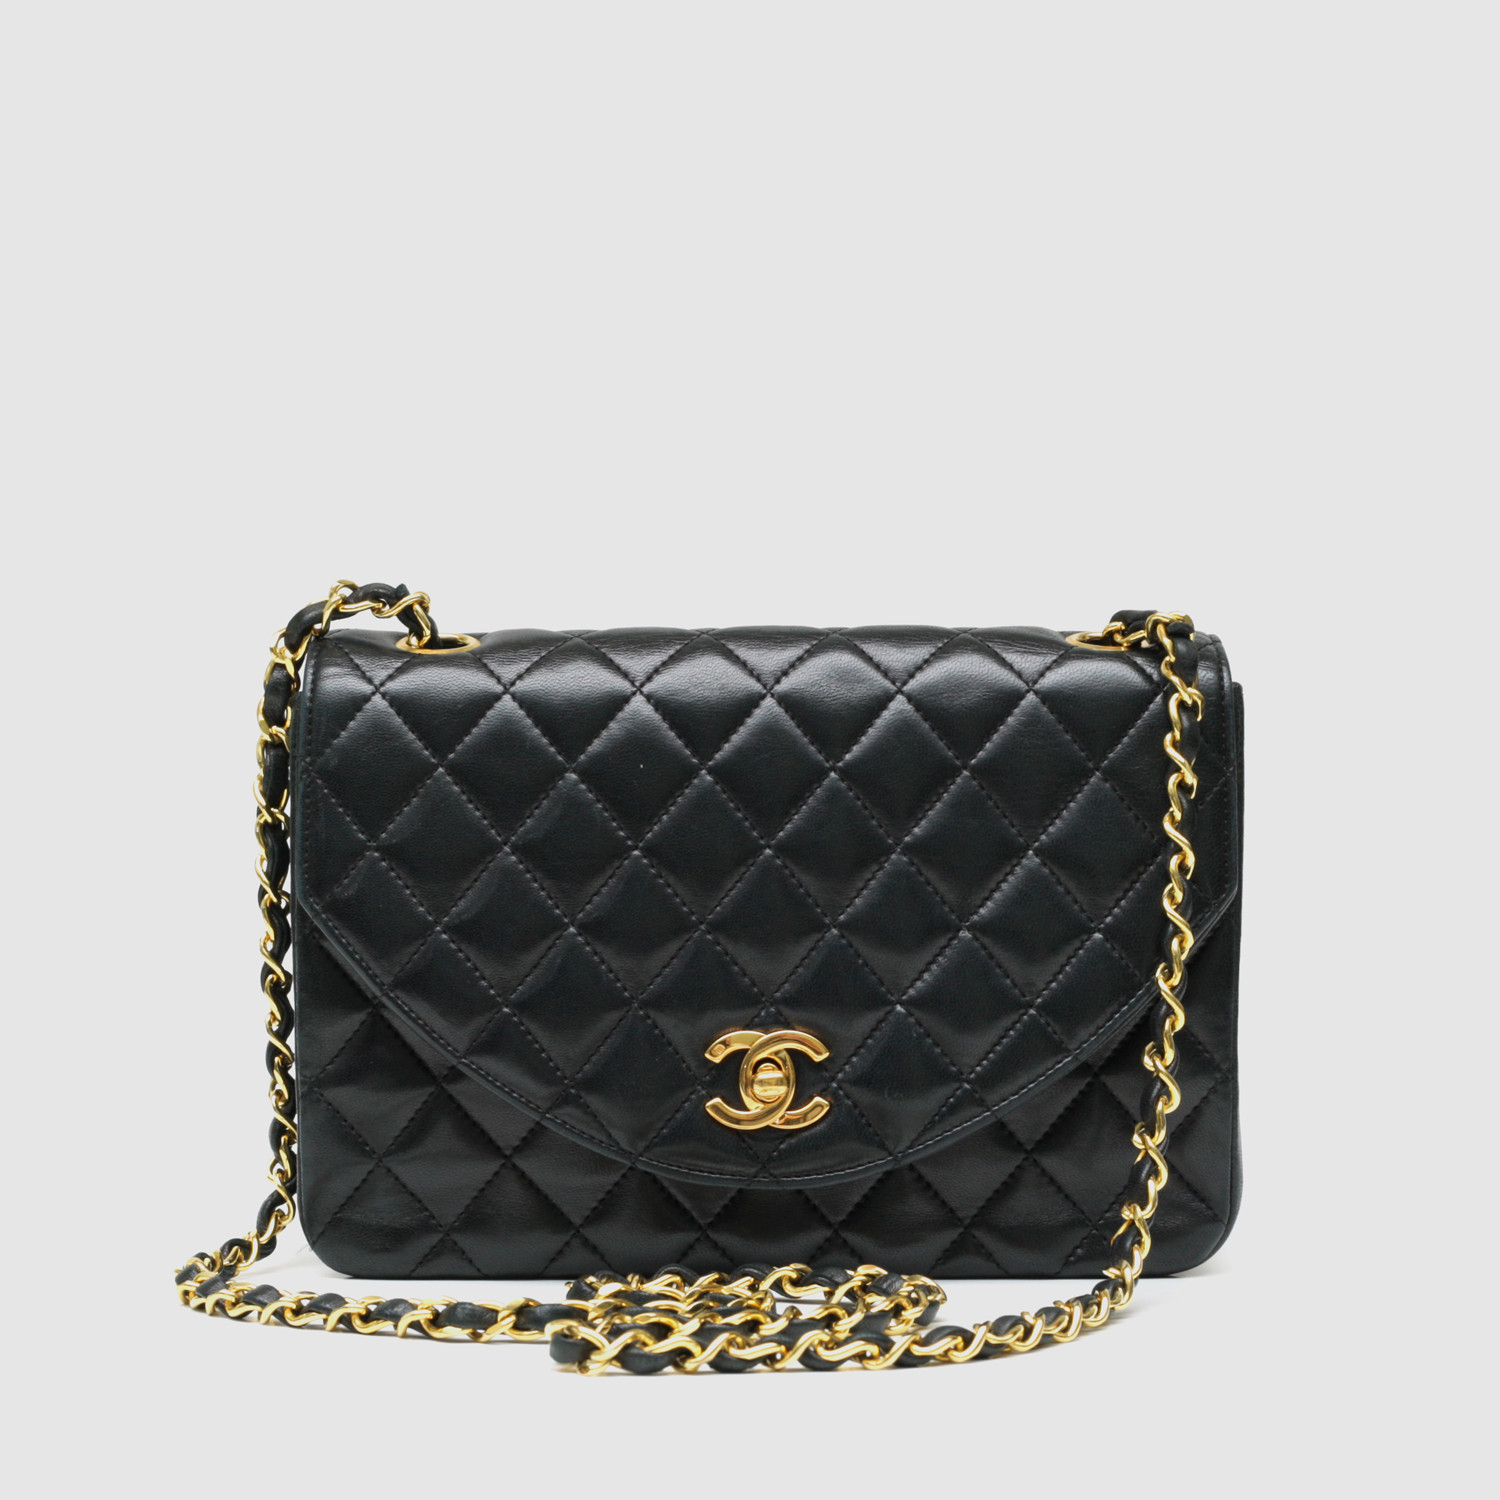 8f2c089d5db44 Chanel Small Flap Bag    Black Quilted Lambskin - Vintage Luxury ...